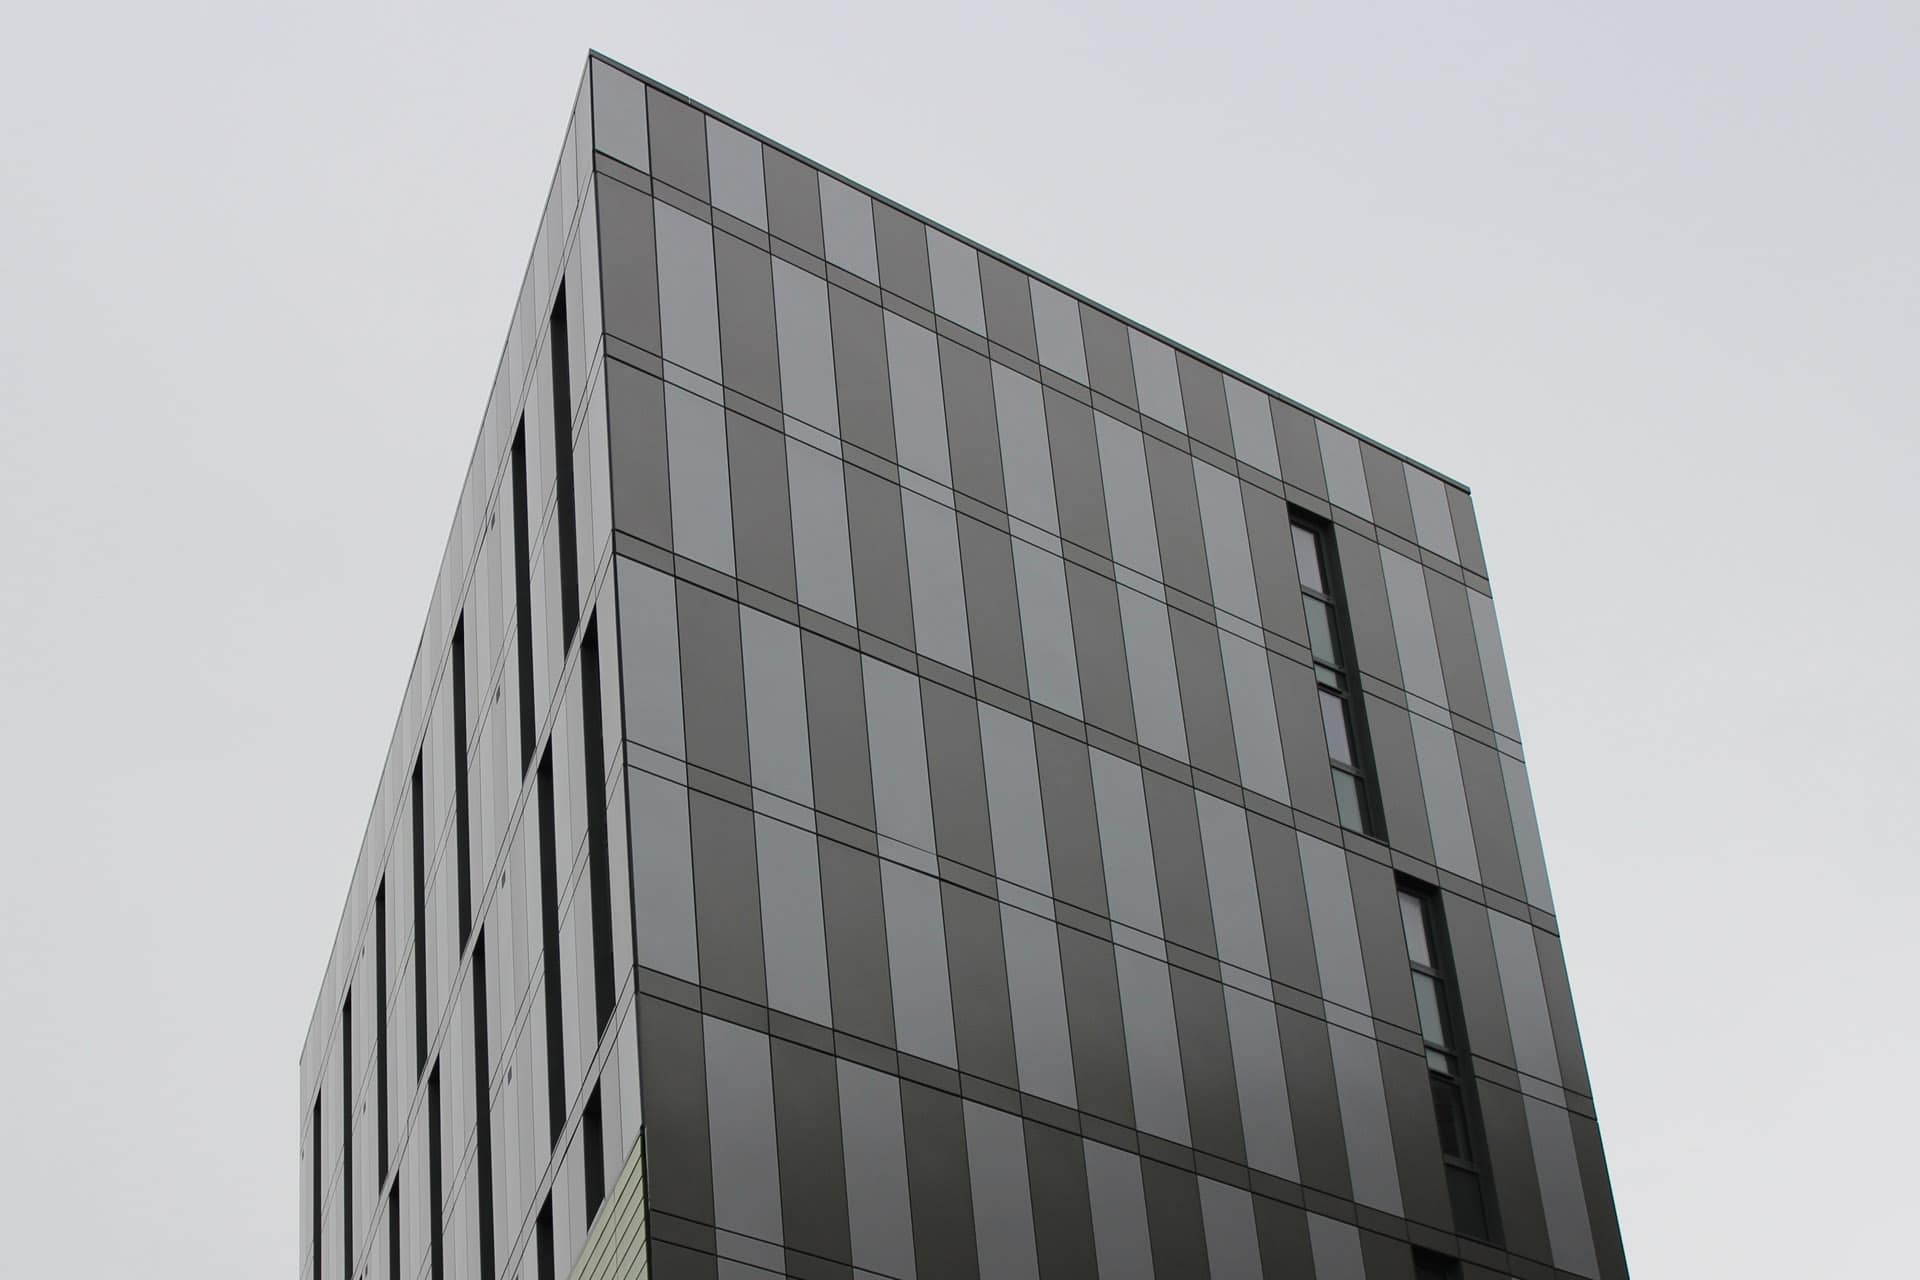 Hill Court Pitt Street TFC Rainscreen Cladding